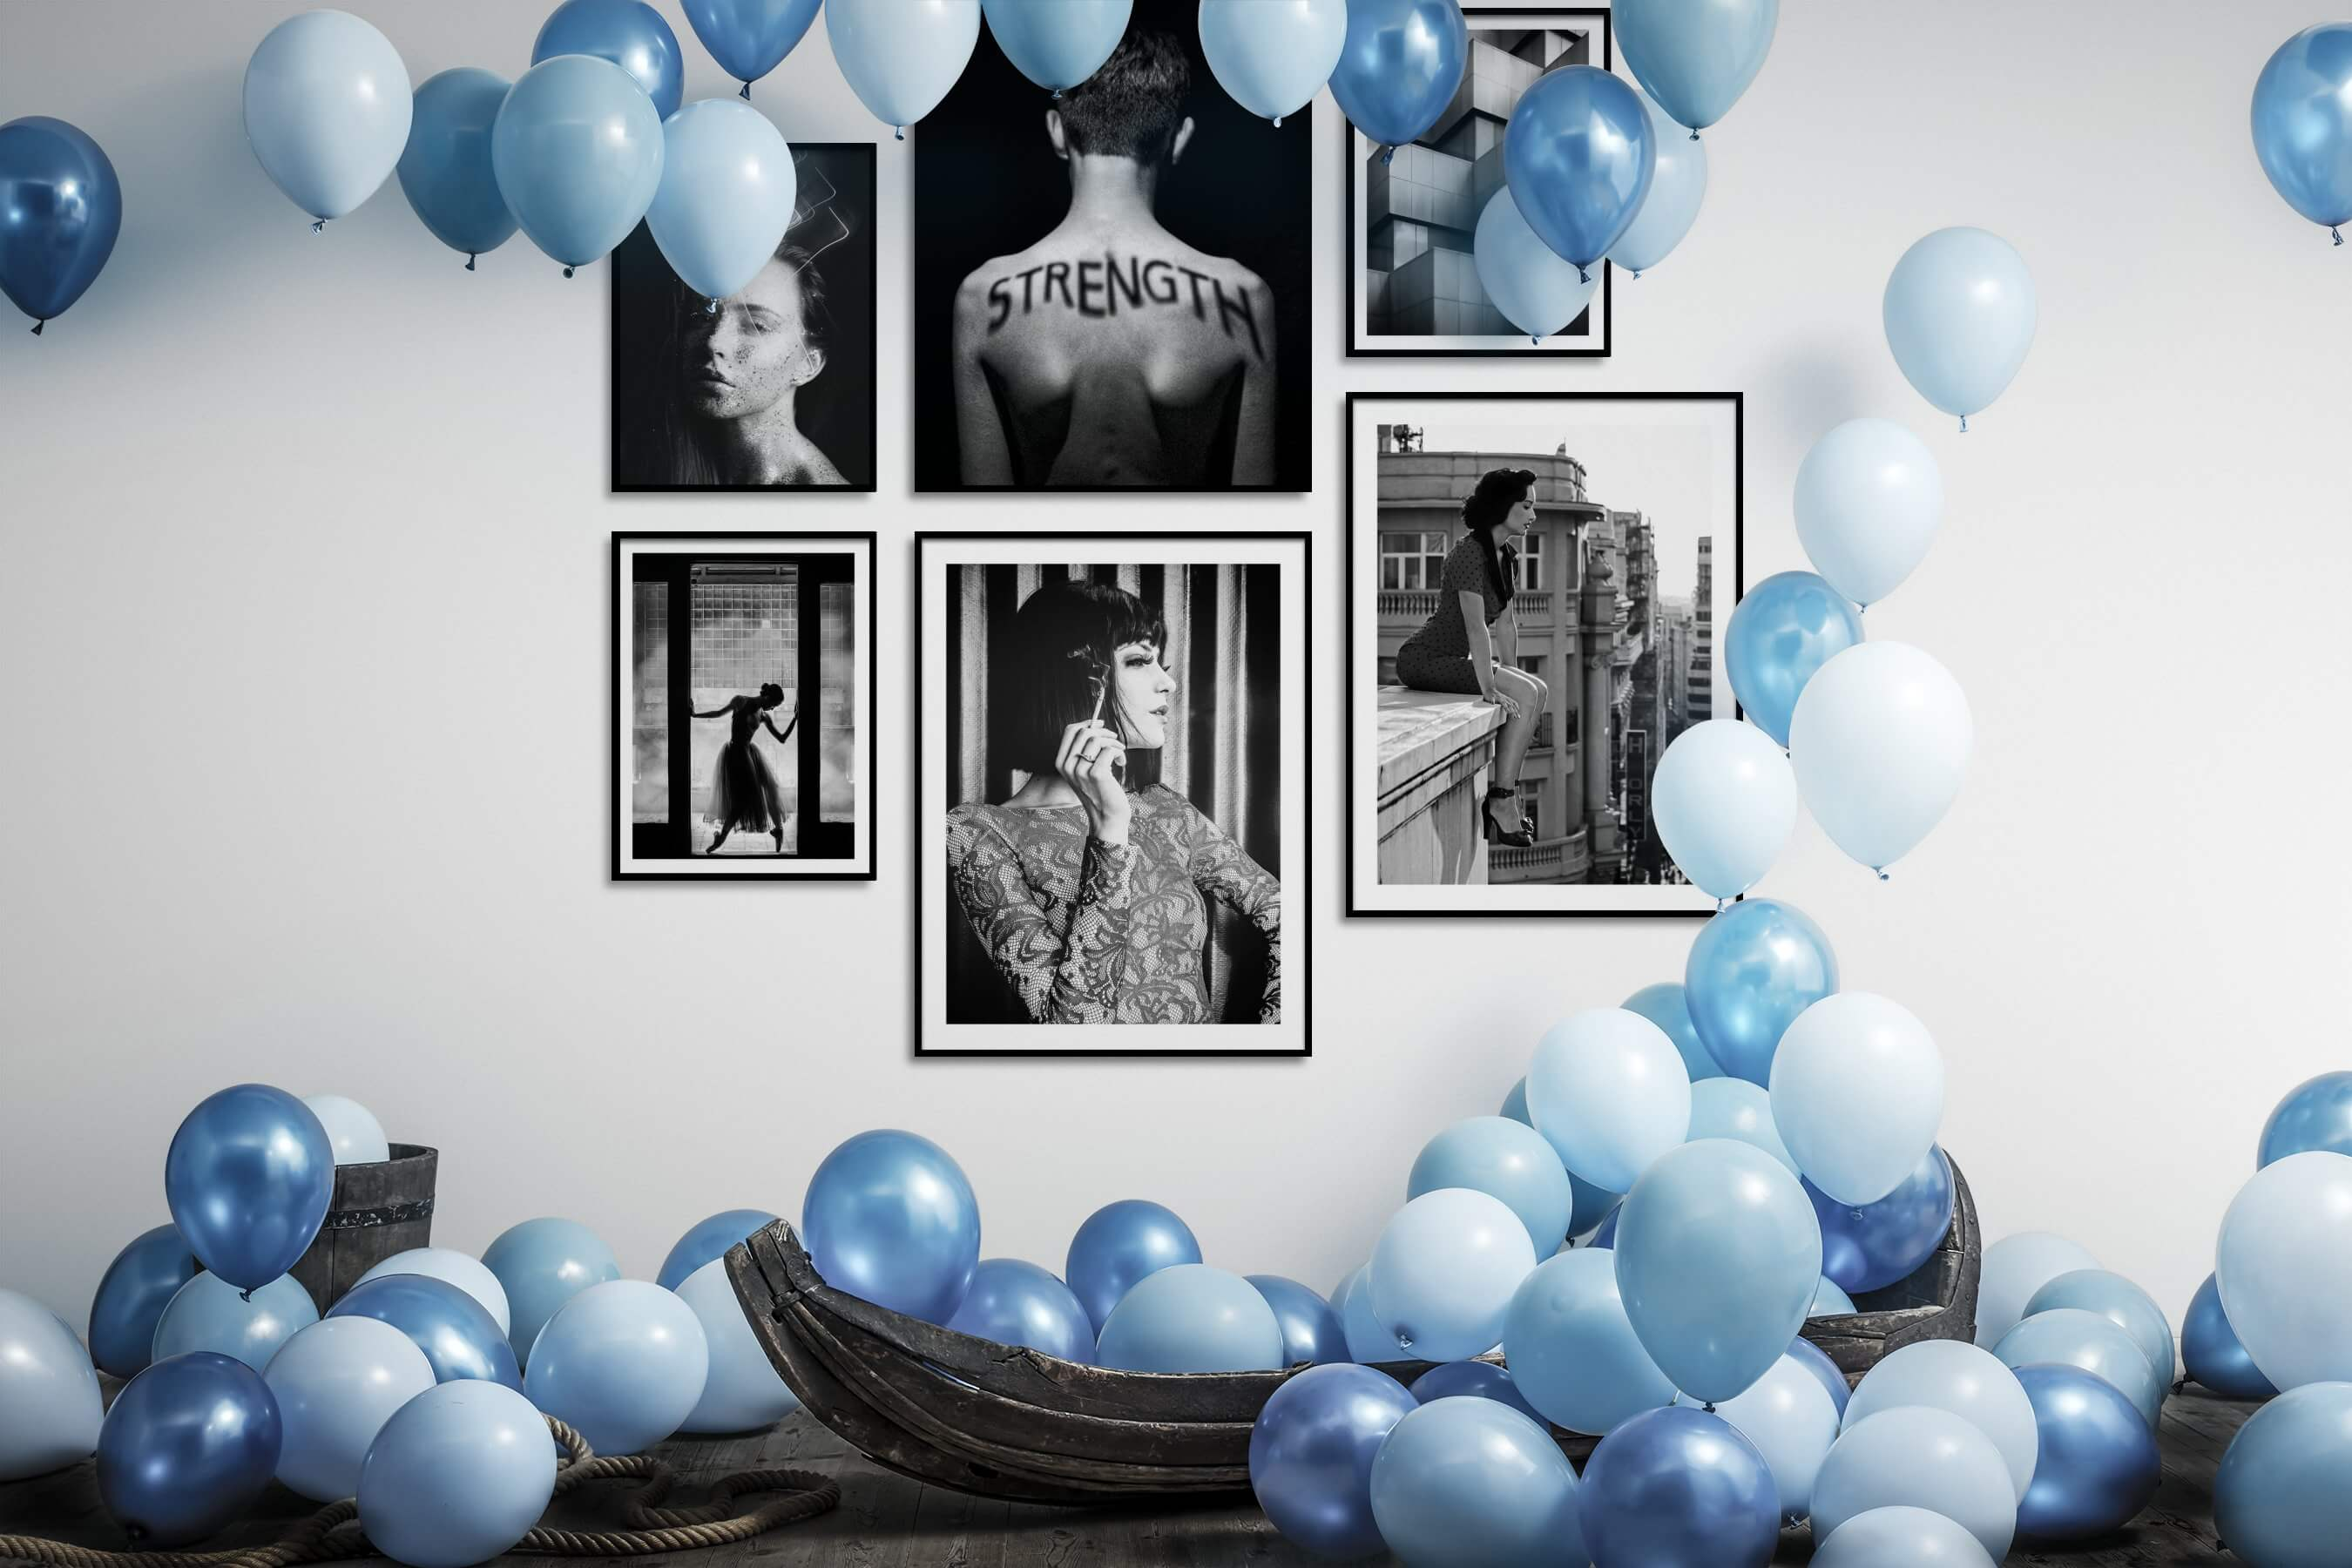 Gallery wall idea with six framed pictures arranged on a wall depicting Fashion & Beauty, Black & White, Dark Tones, For the Moderate, Artsy, Vintage, and City Life